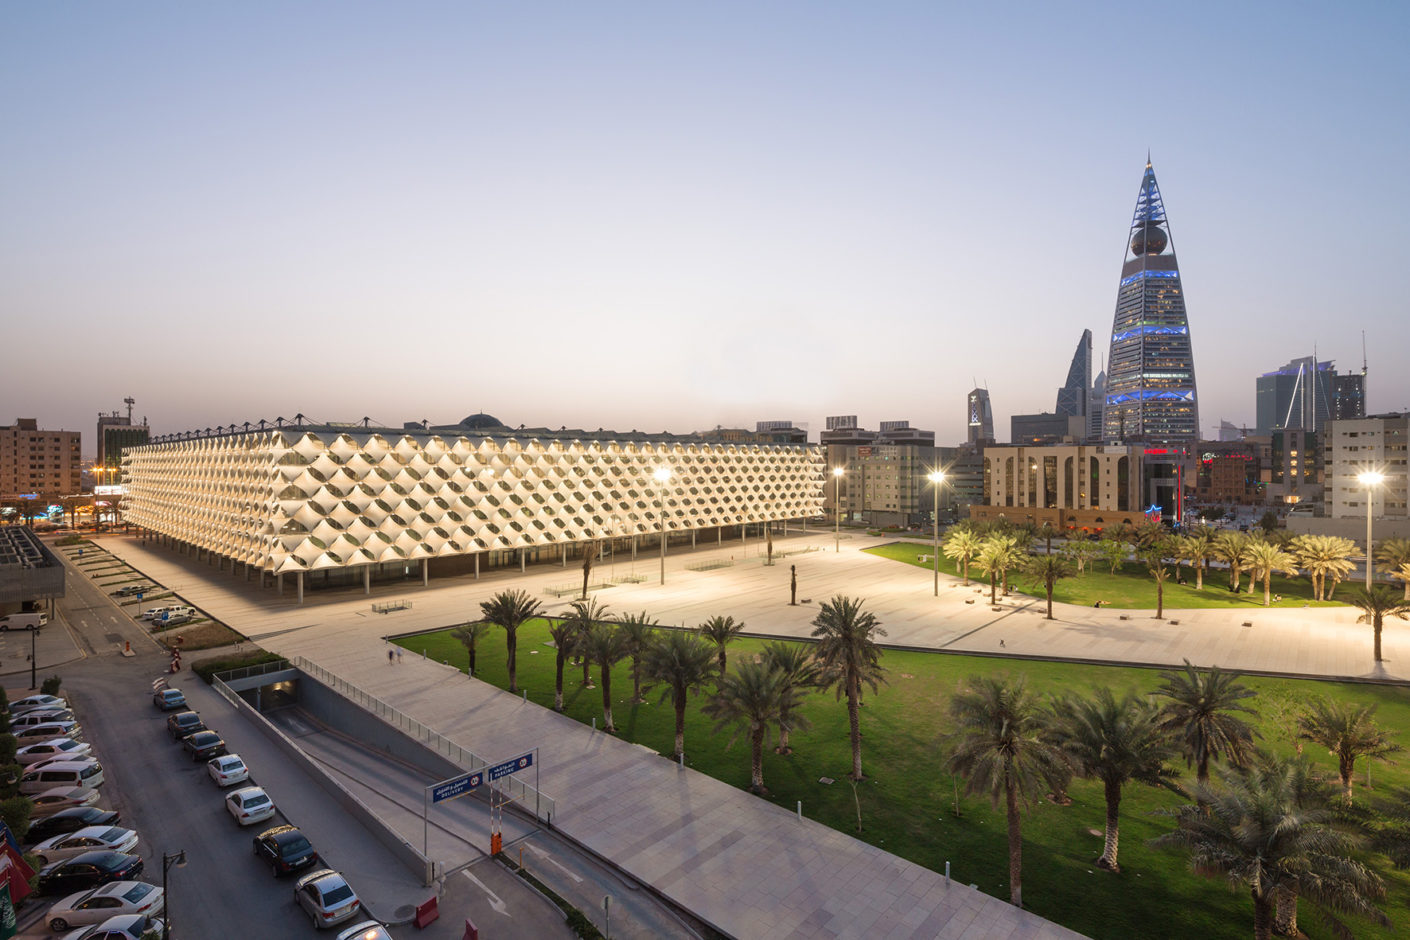 Gerber Architekten have designed the new King Fahad National Library in Riyadh.